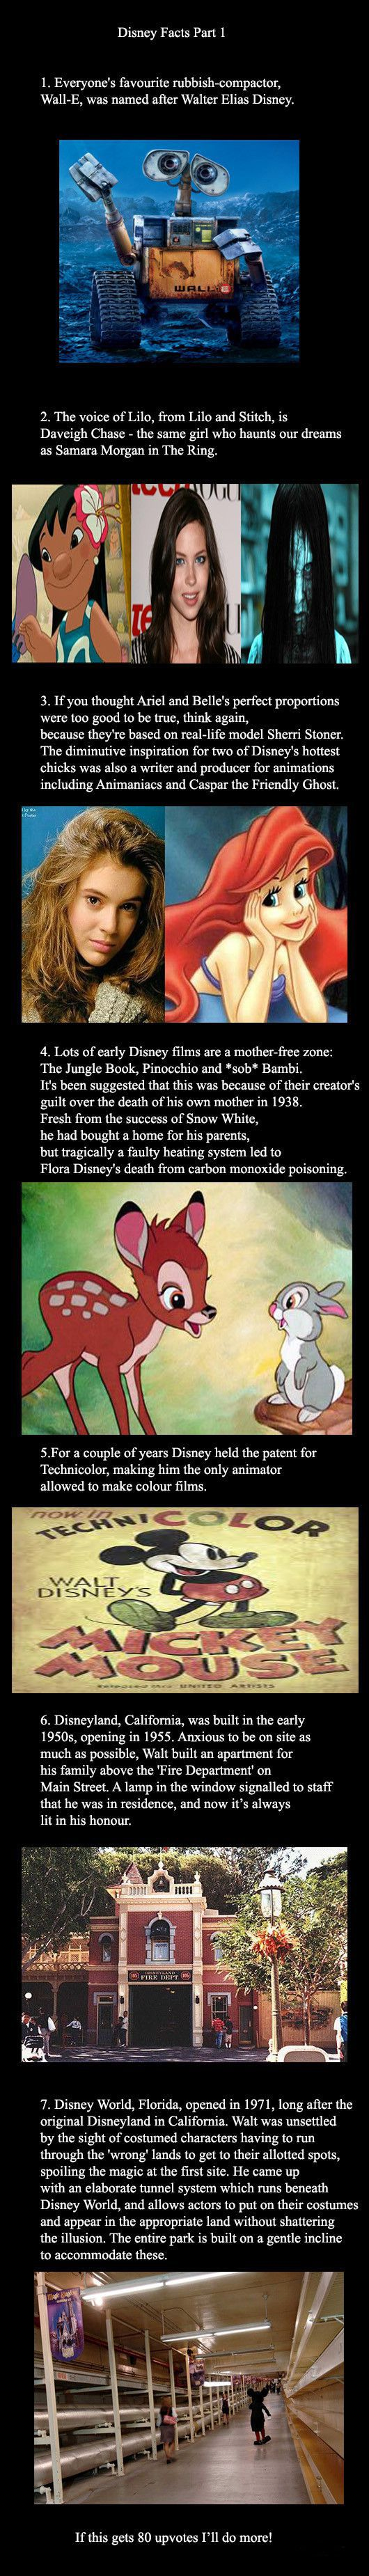 A few interesting Disney facts